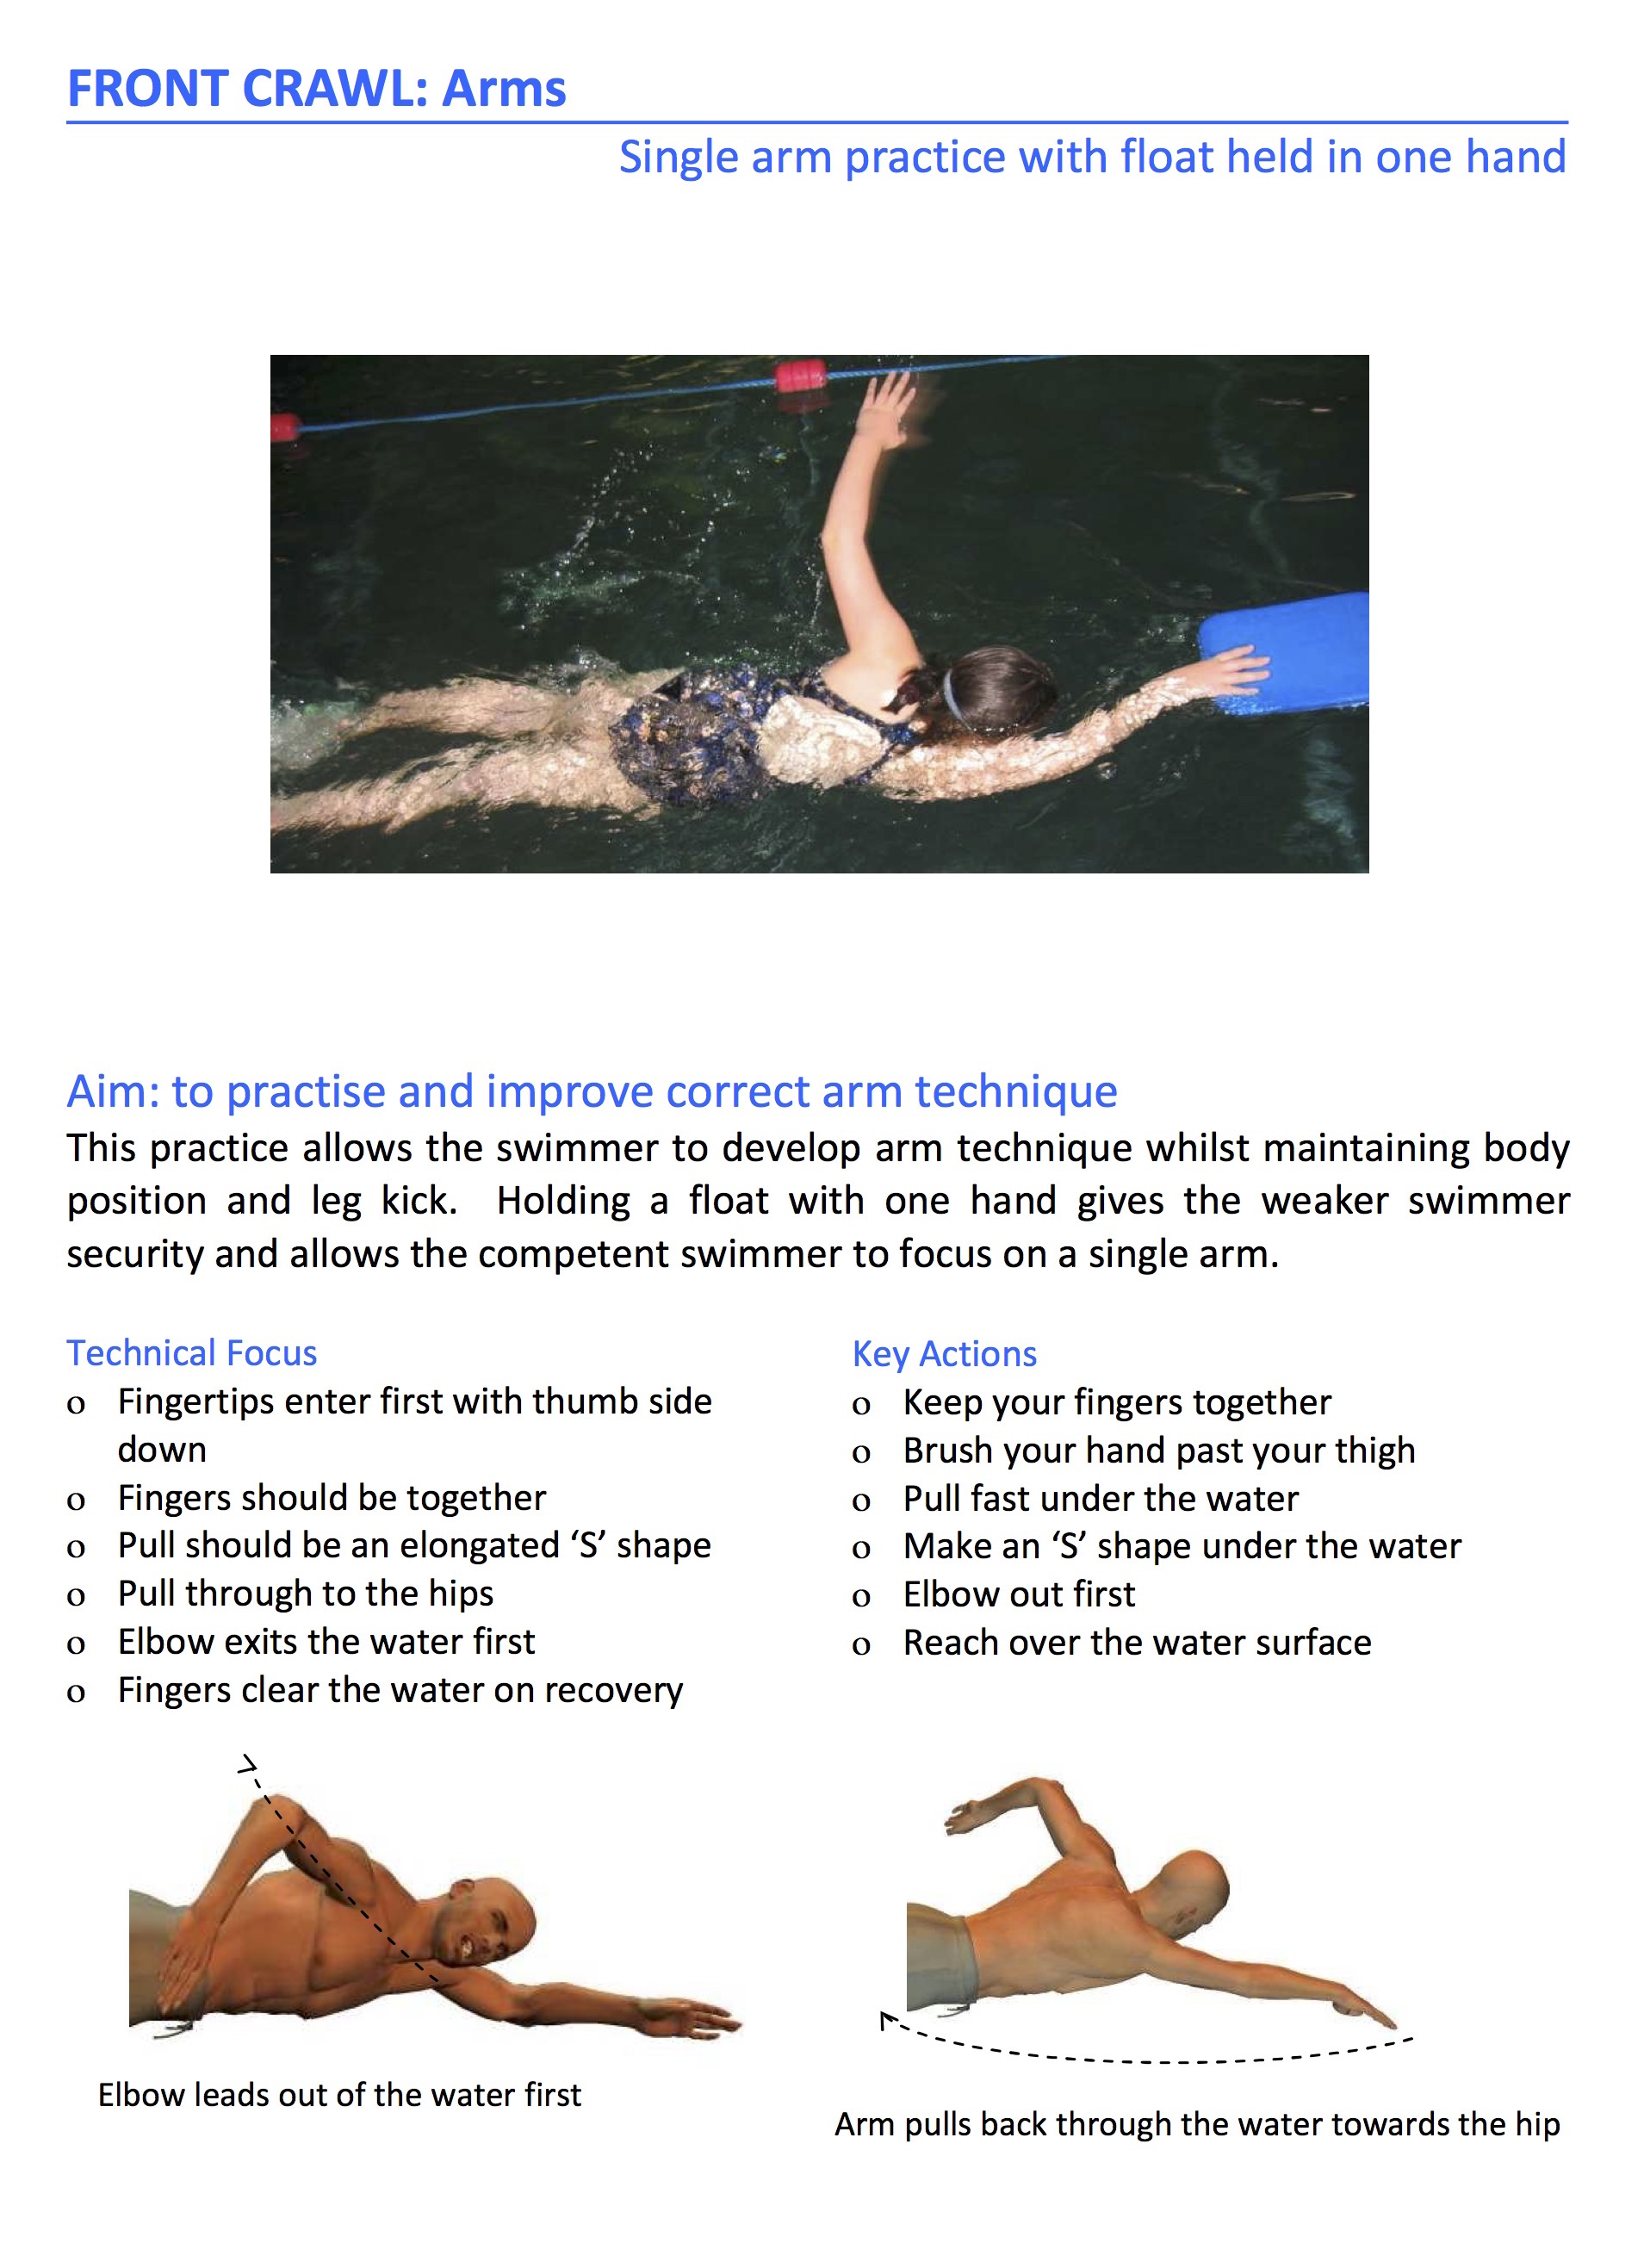 Front Crawl Arms | A Beginners Guide to Correct Basic Technique